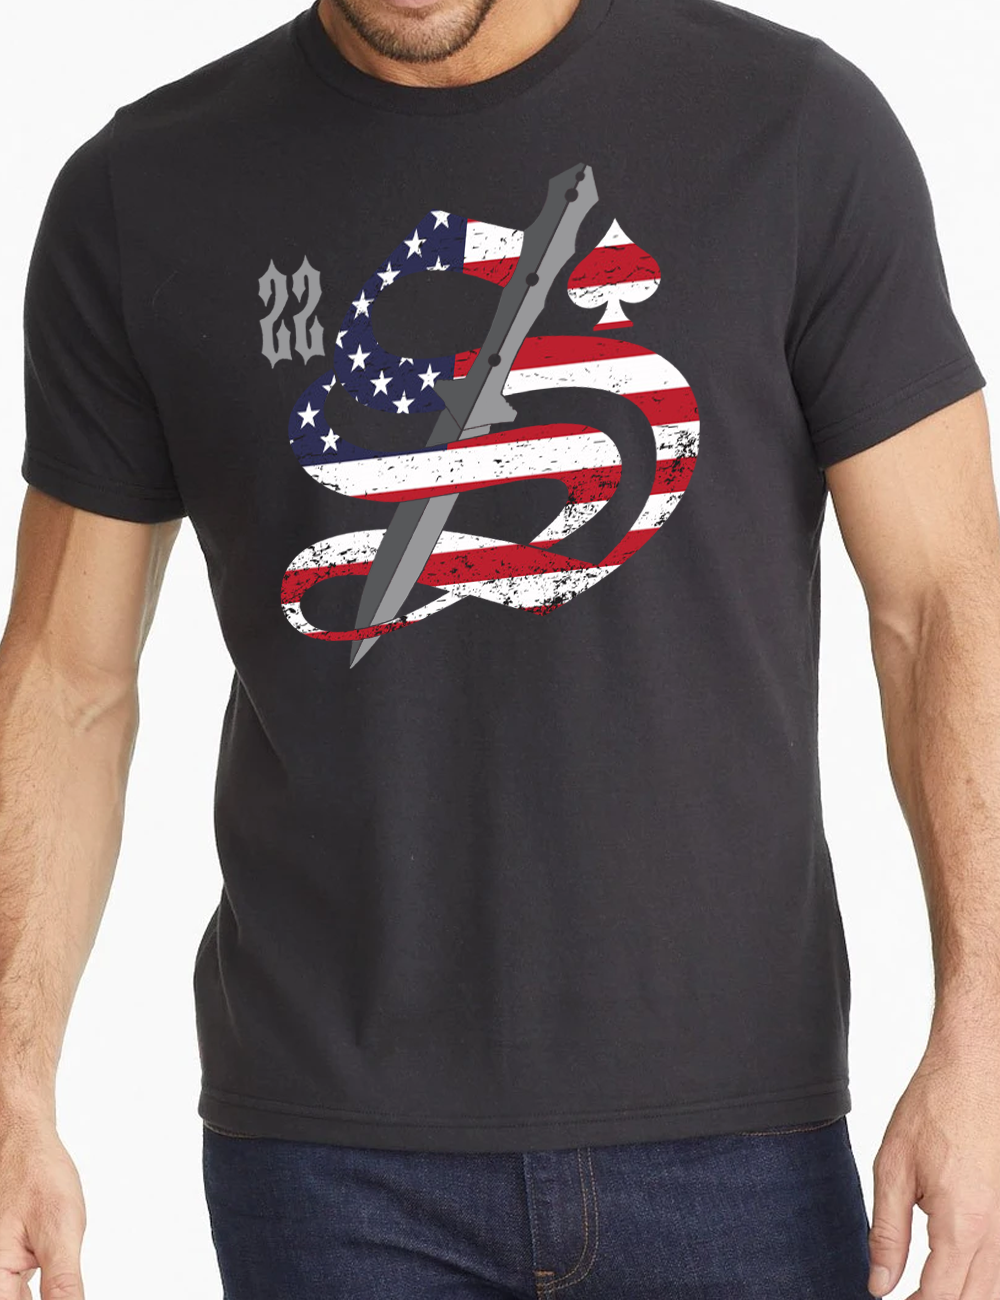 22 Smokin AceS - USA Shirt